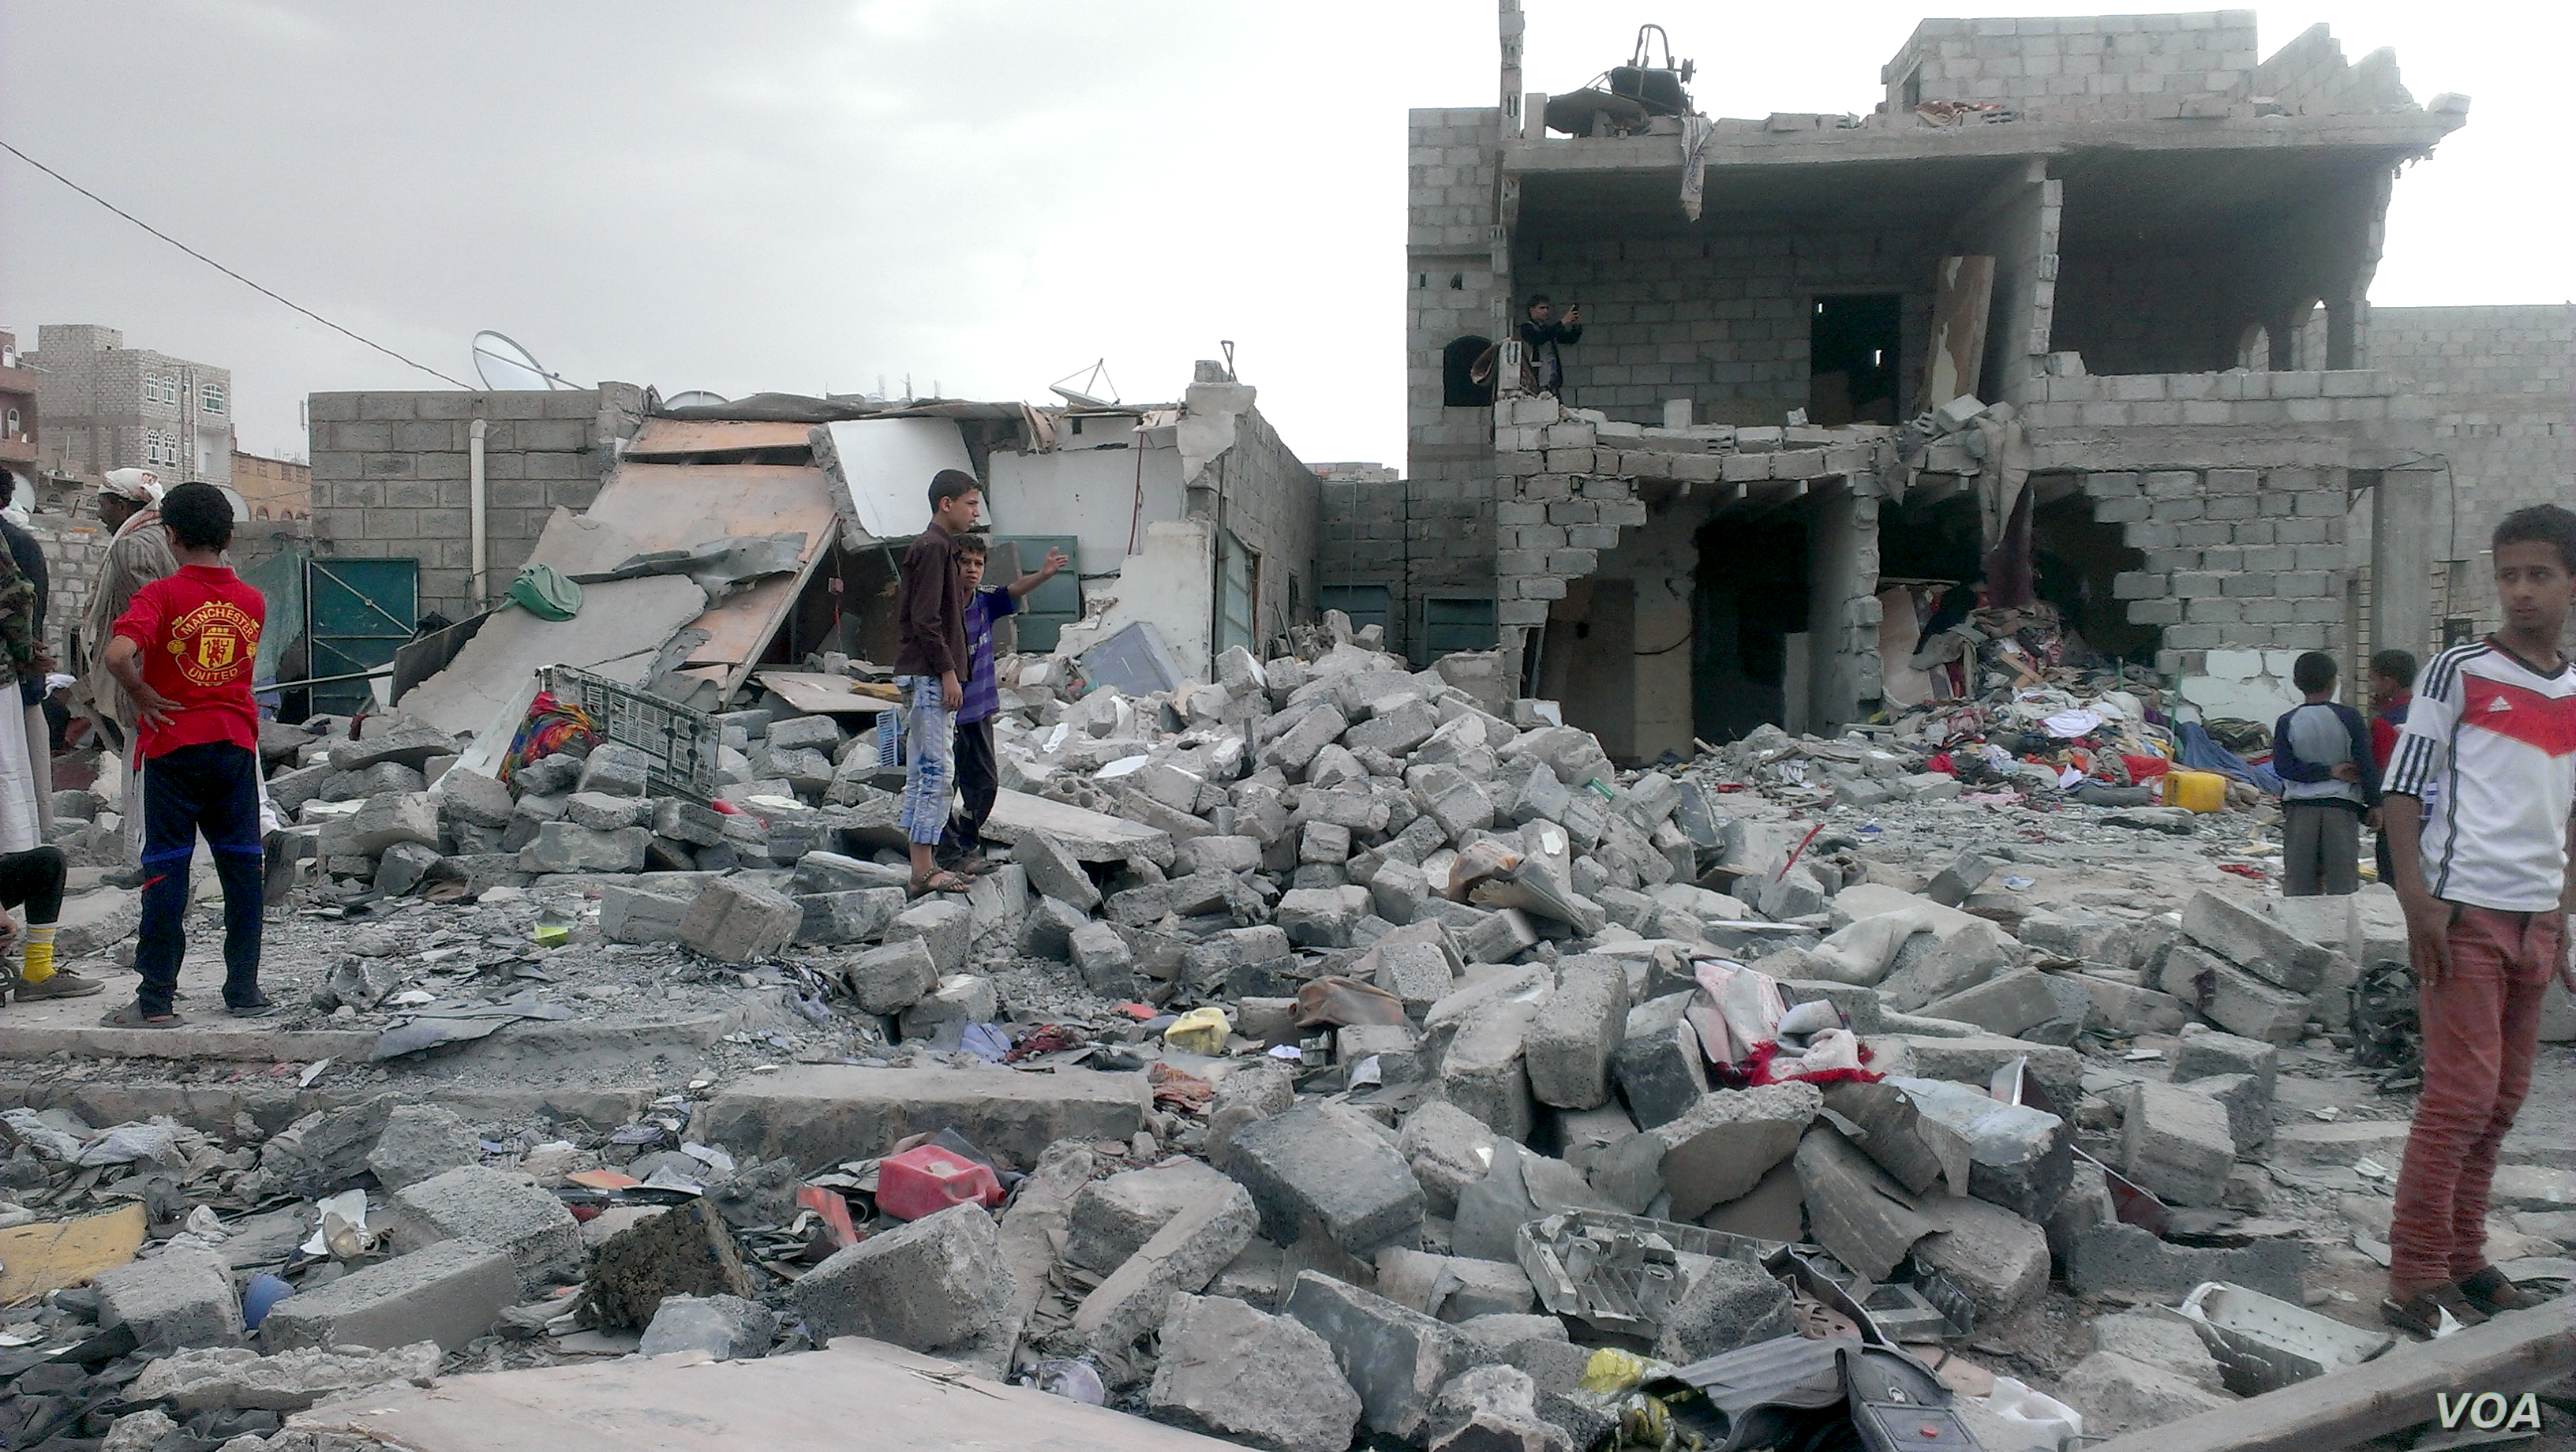 """Months after an airstrike on a neighborhood populated by black Yemenis, or """"Muhamasheen,"""" more than a hundred buildings still remain in rubble and survivors continue to search for any valuables, Sana'a, Yemen, Oct. 9, 2015. (Almigdad Mojalli/VOA)"""